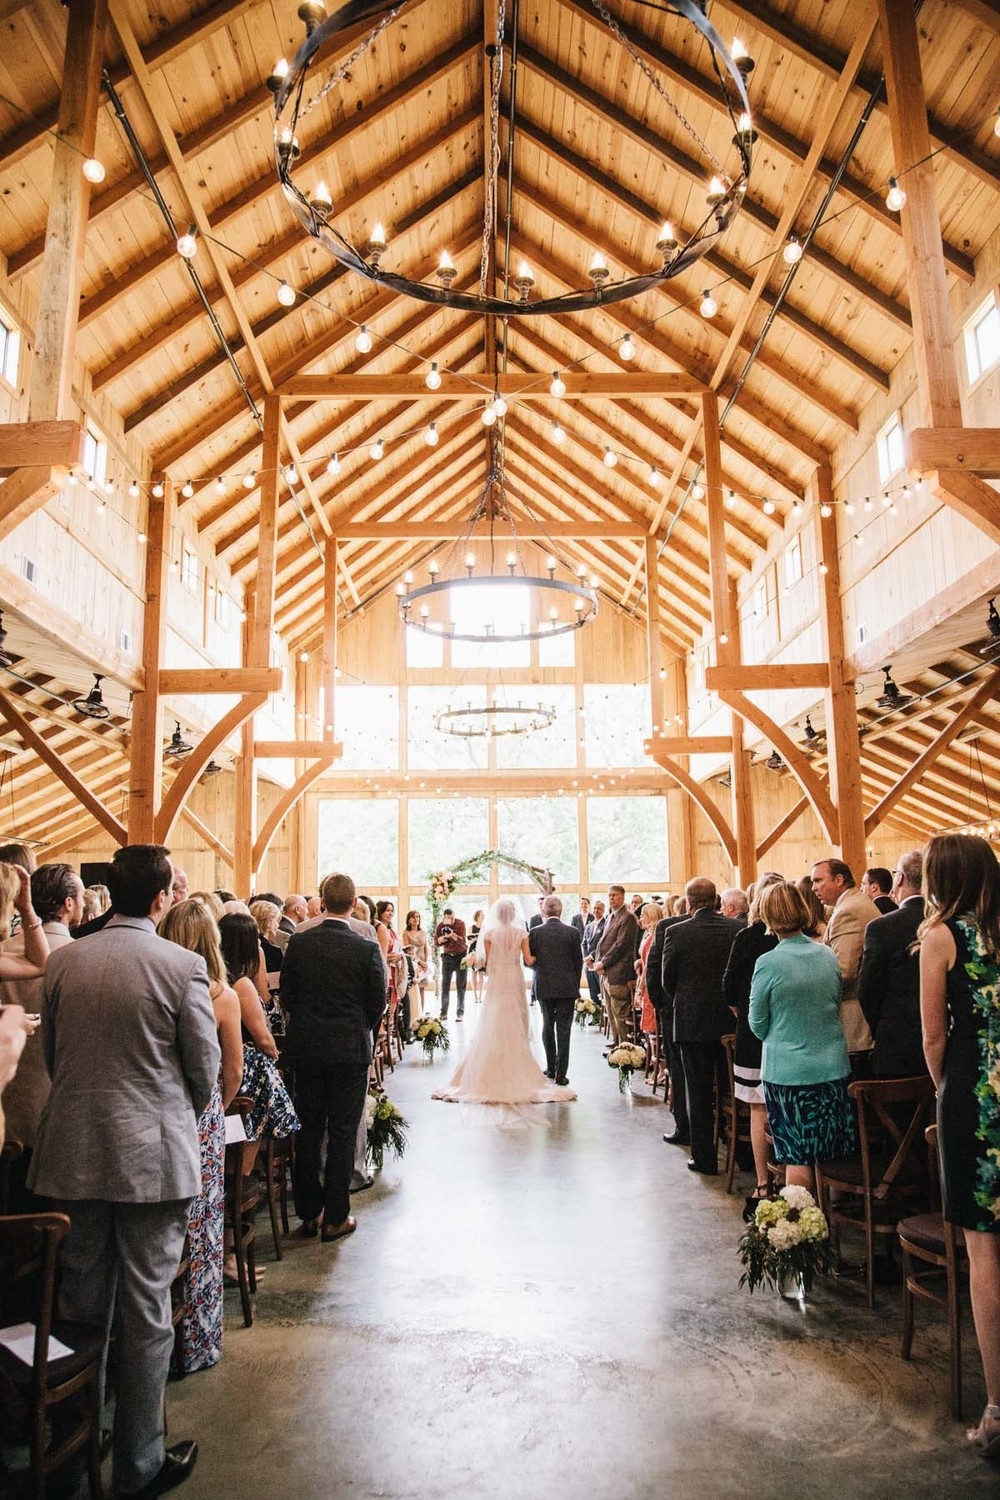 Barn wedding ceremony processional